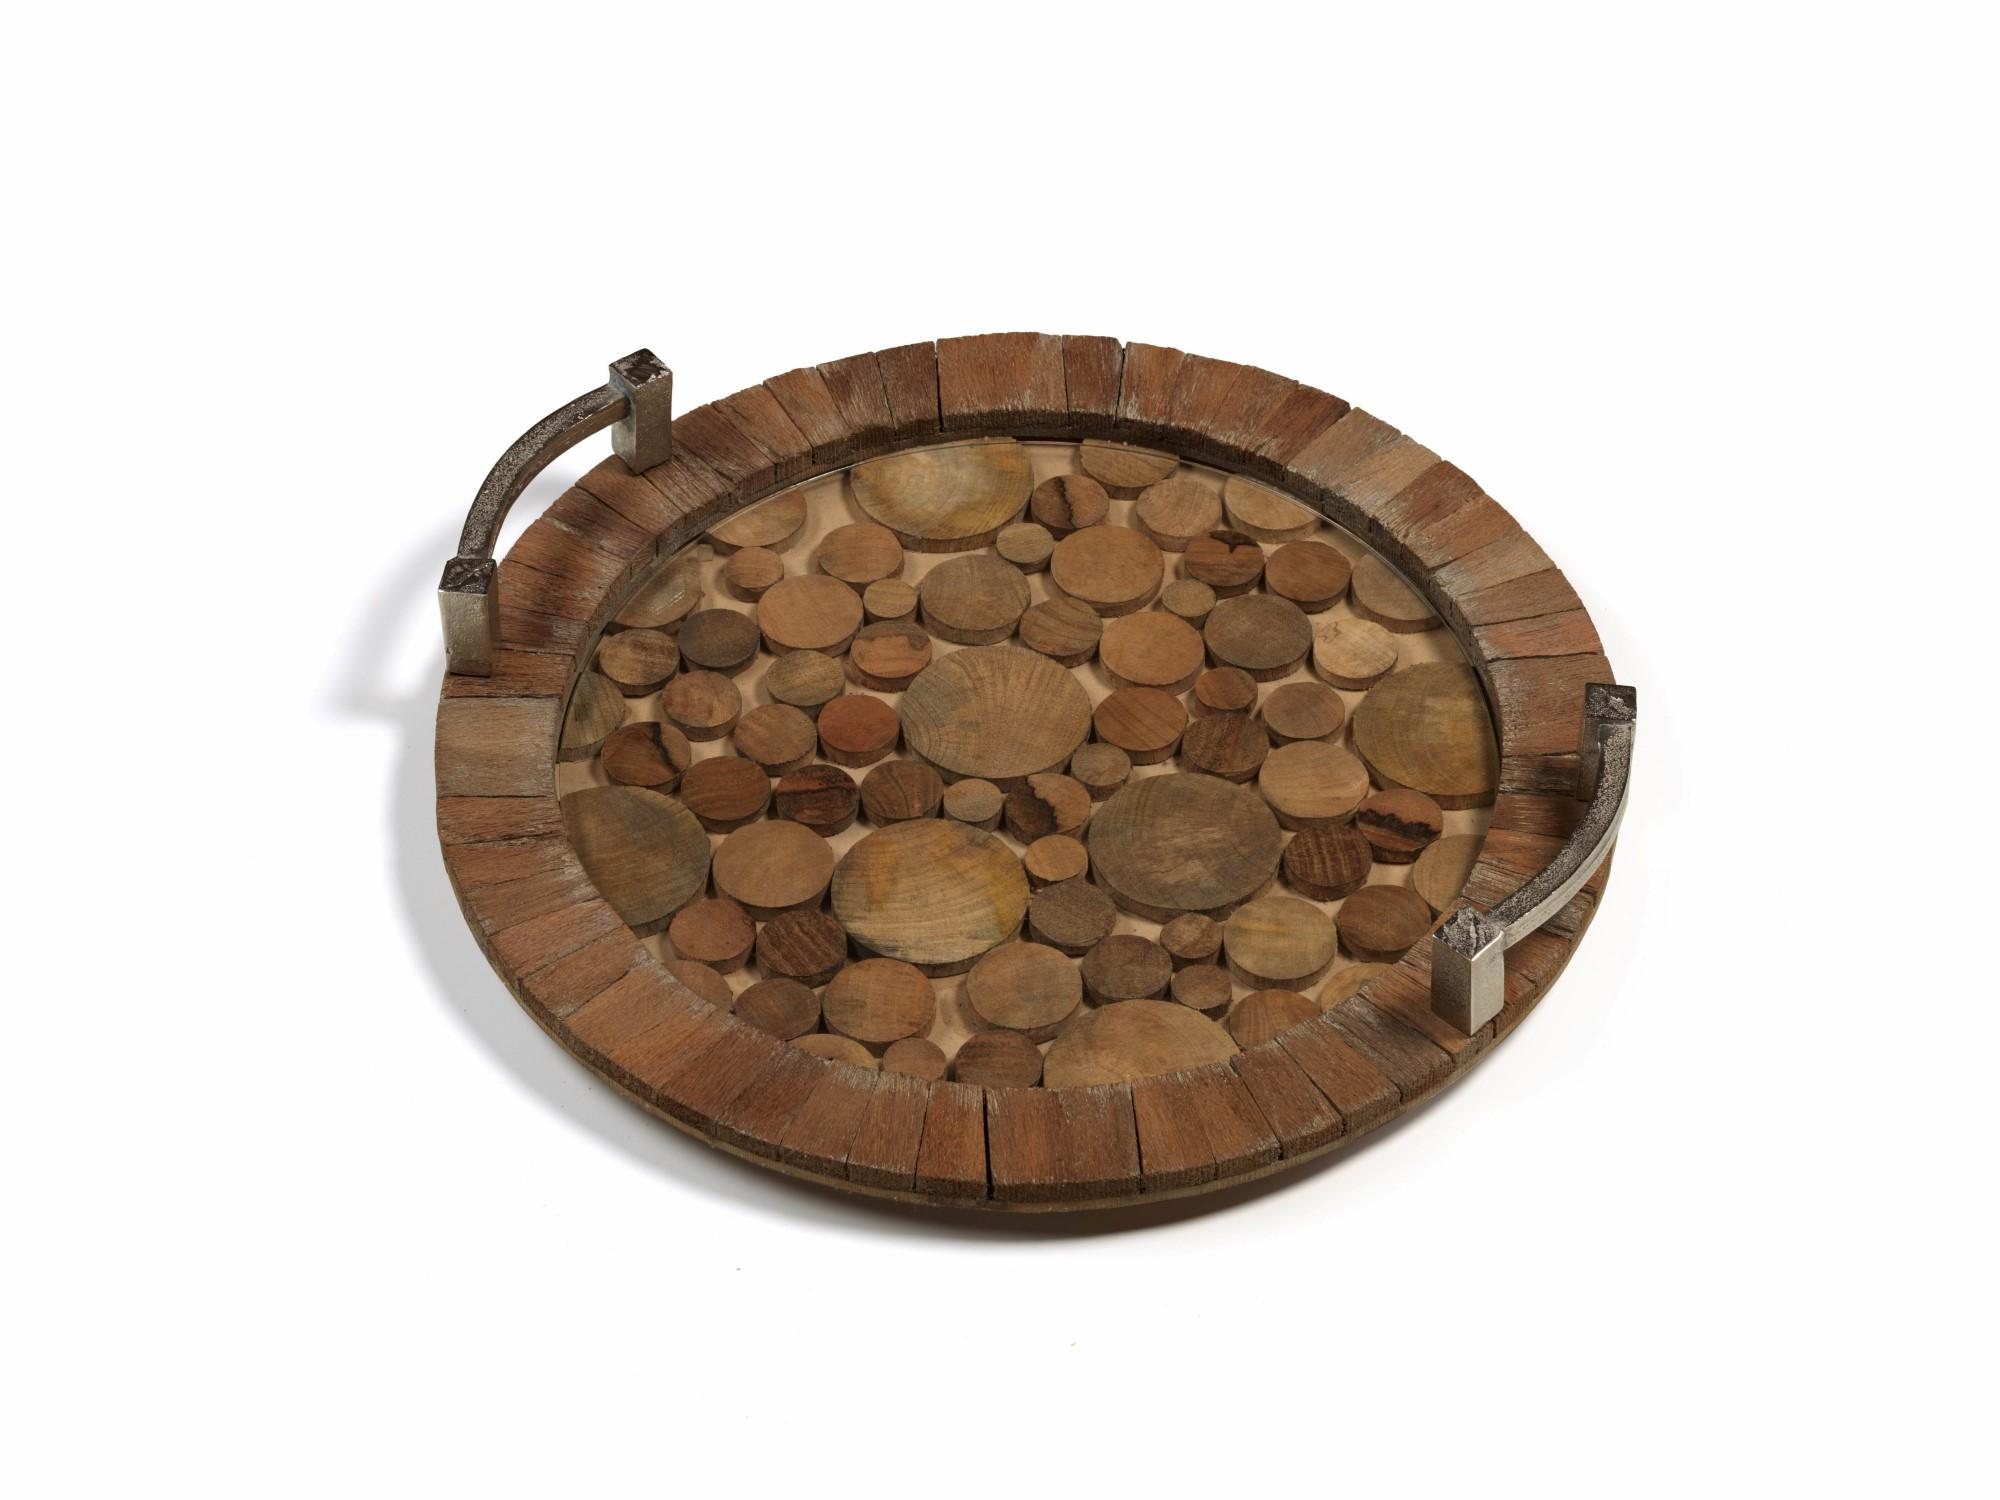 This reclaimed wood tray boasts intriguing details— textured metal handles and circular pattern bottom, carefully protected by clear glass. And when you're not entertaining, it's handsome enough to display alone on your coffee table, buffet or kitchen island. http://bit.ly/2AnxRdN